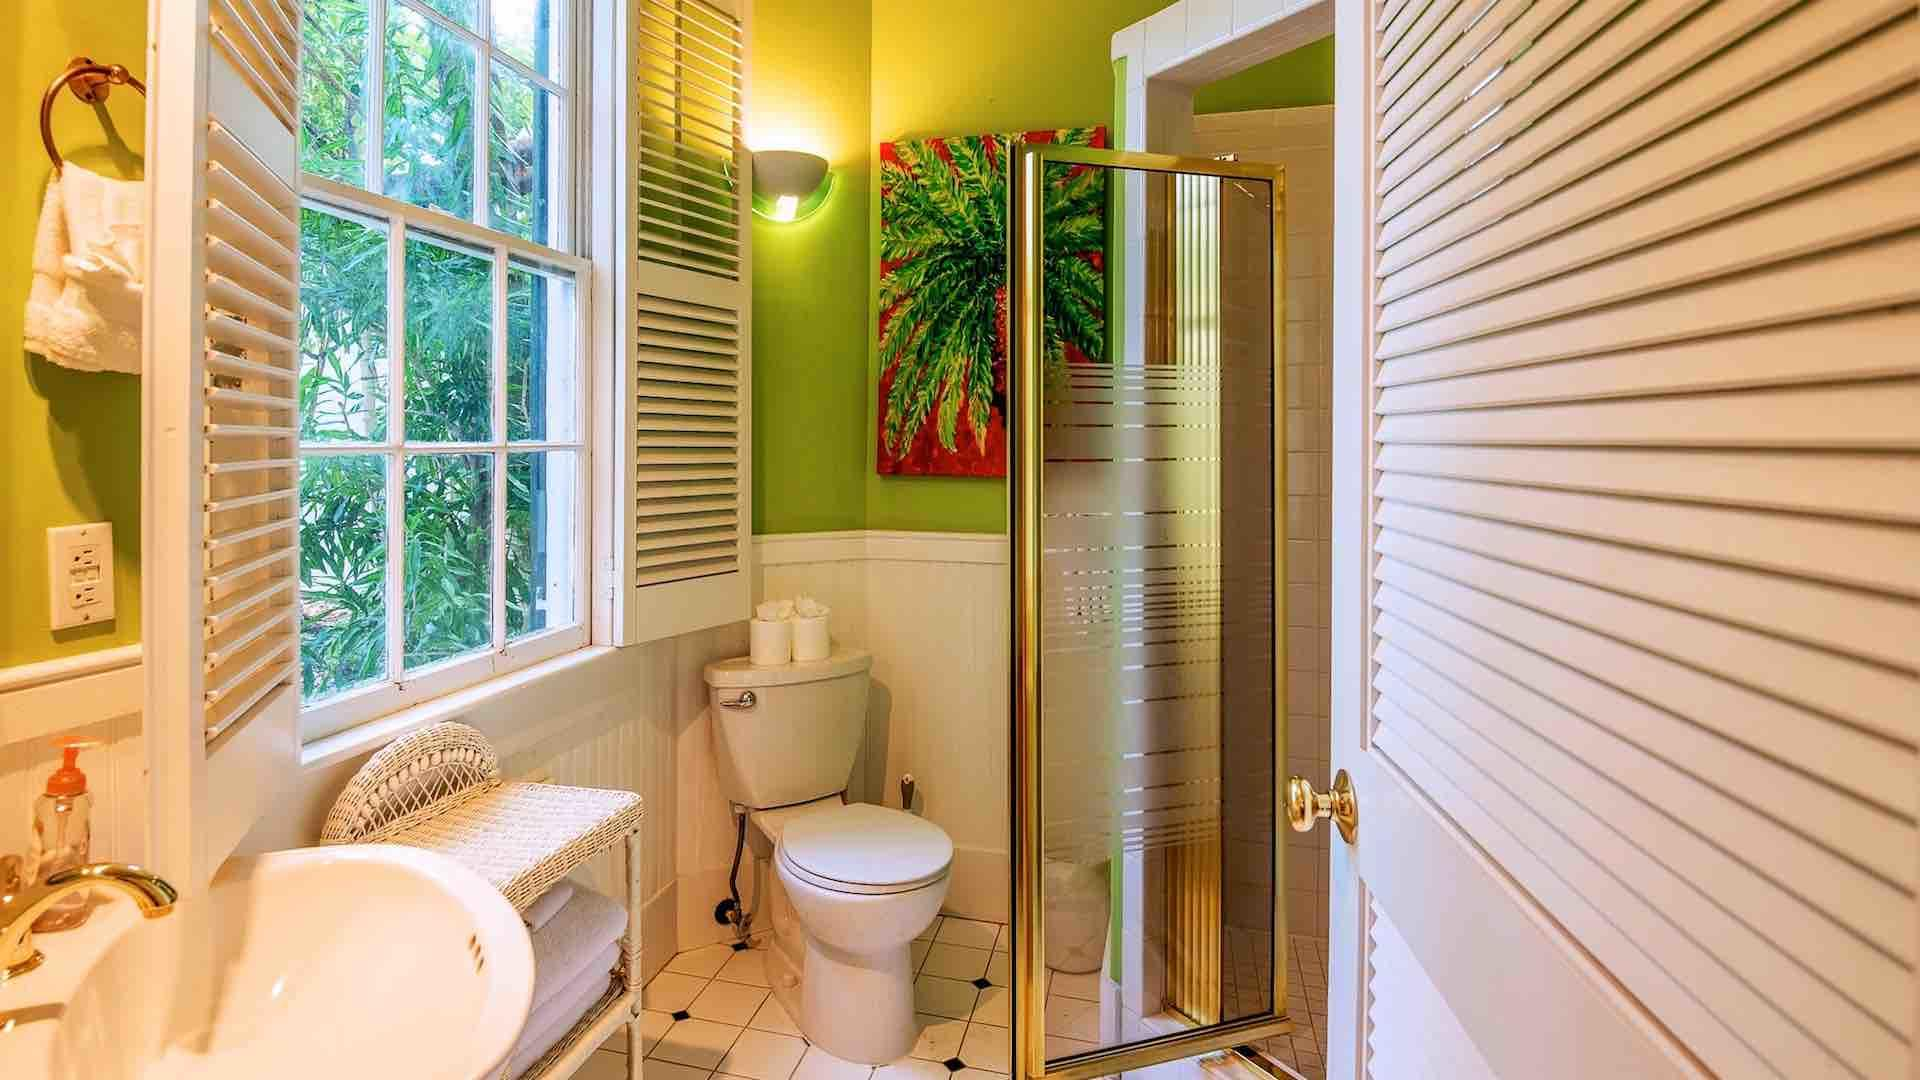 There is a full bathroom on the main floor that is perfect for additional guests.